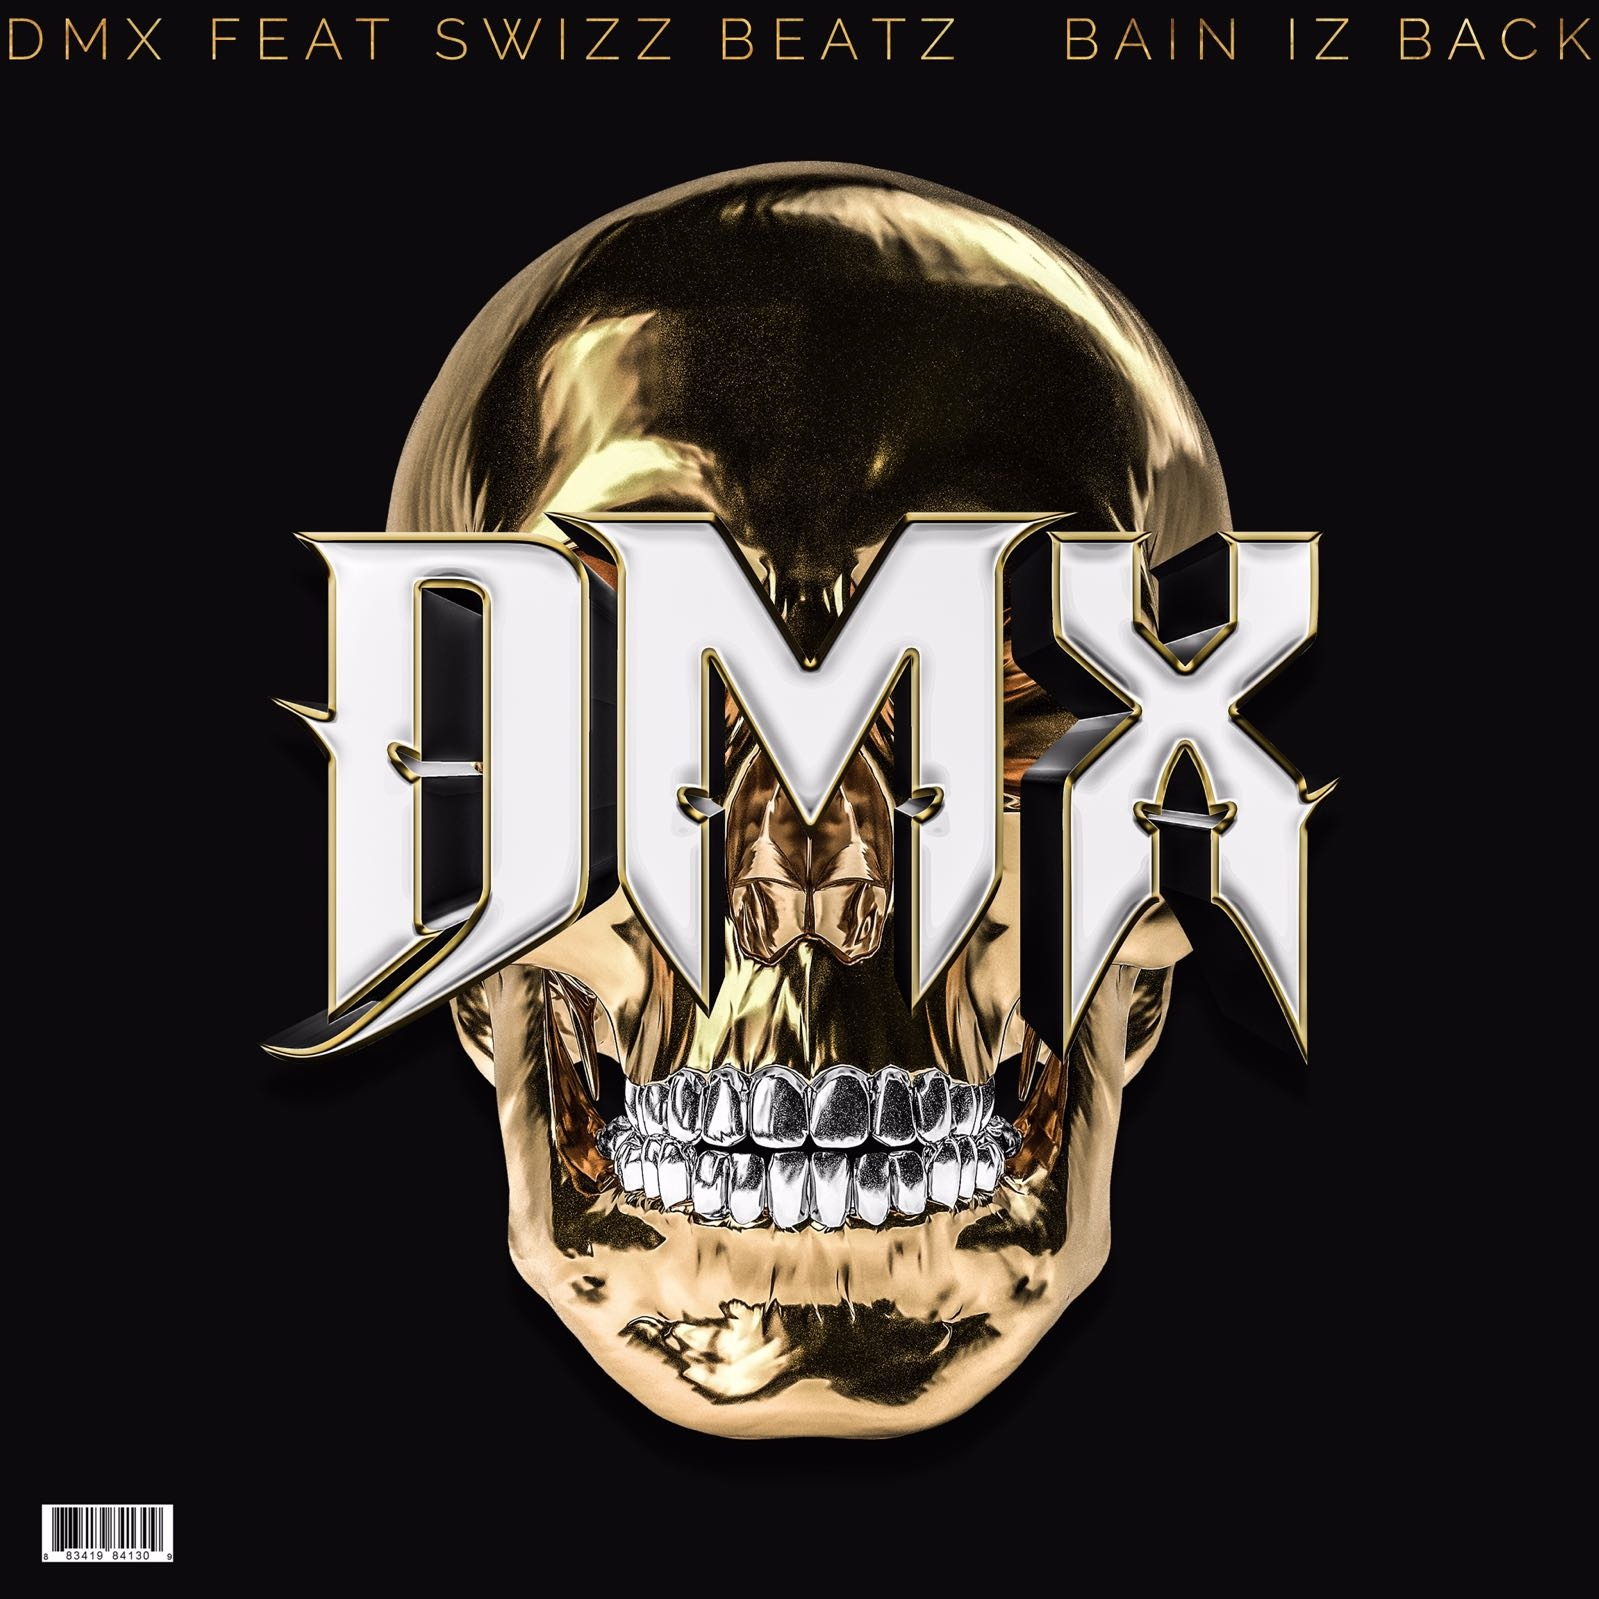 dmx-bain-iz-back-new-song